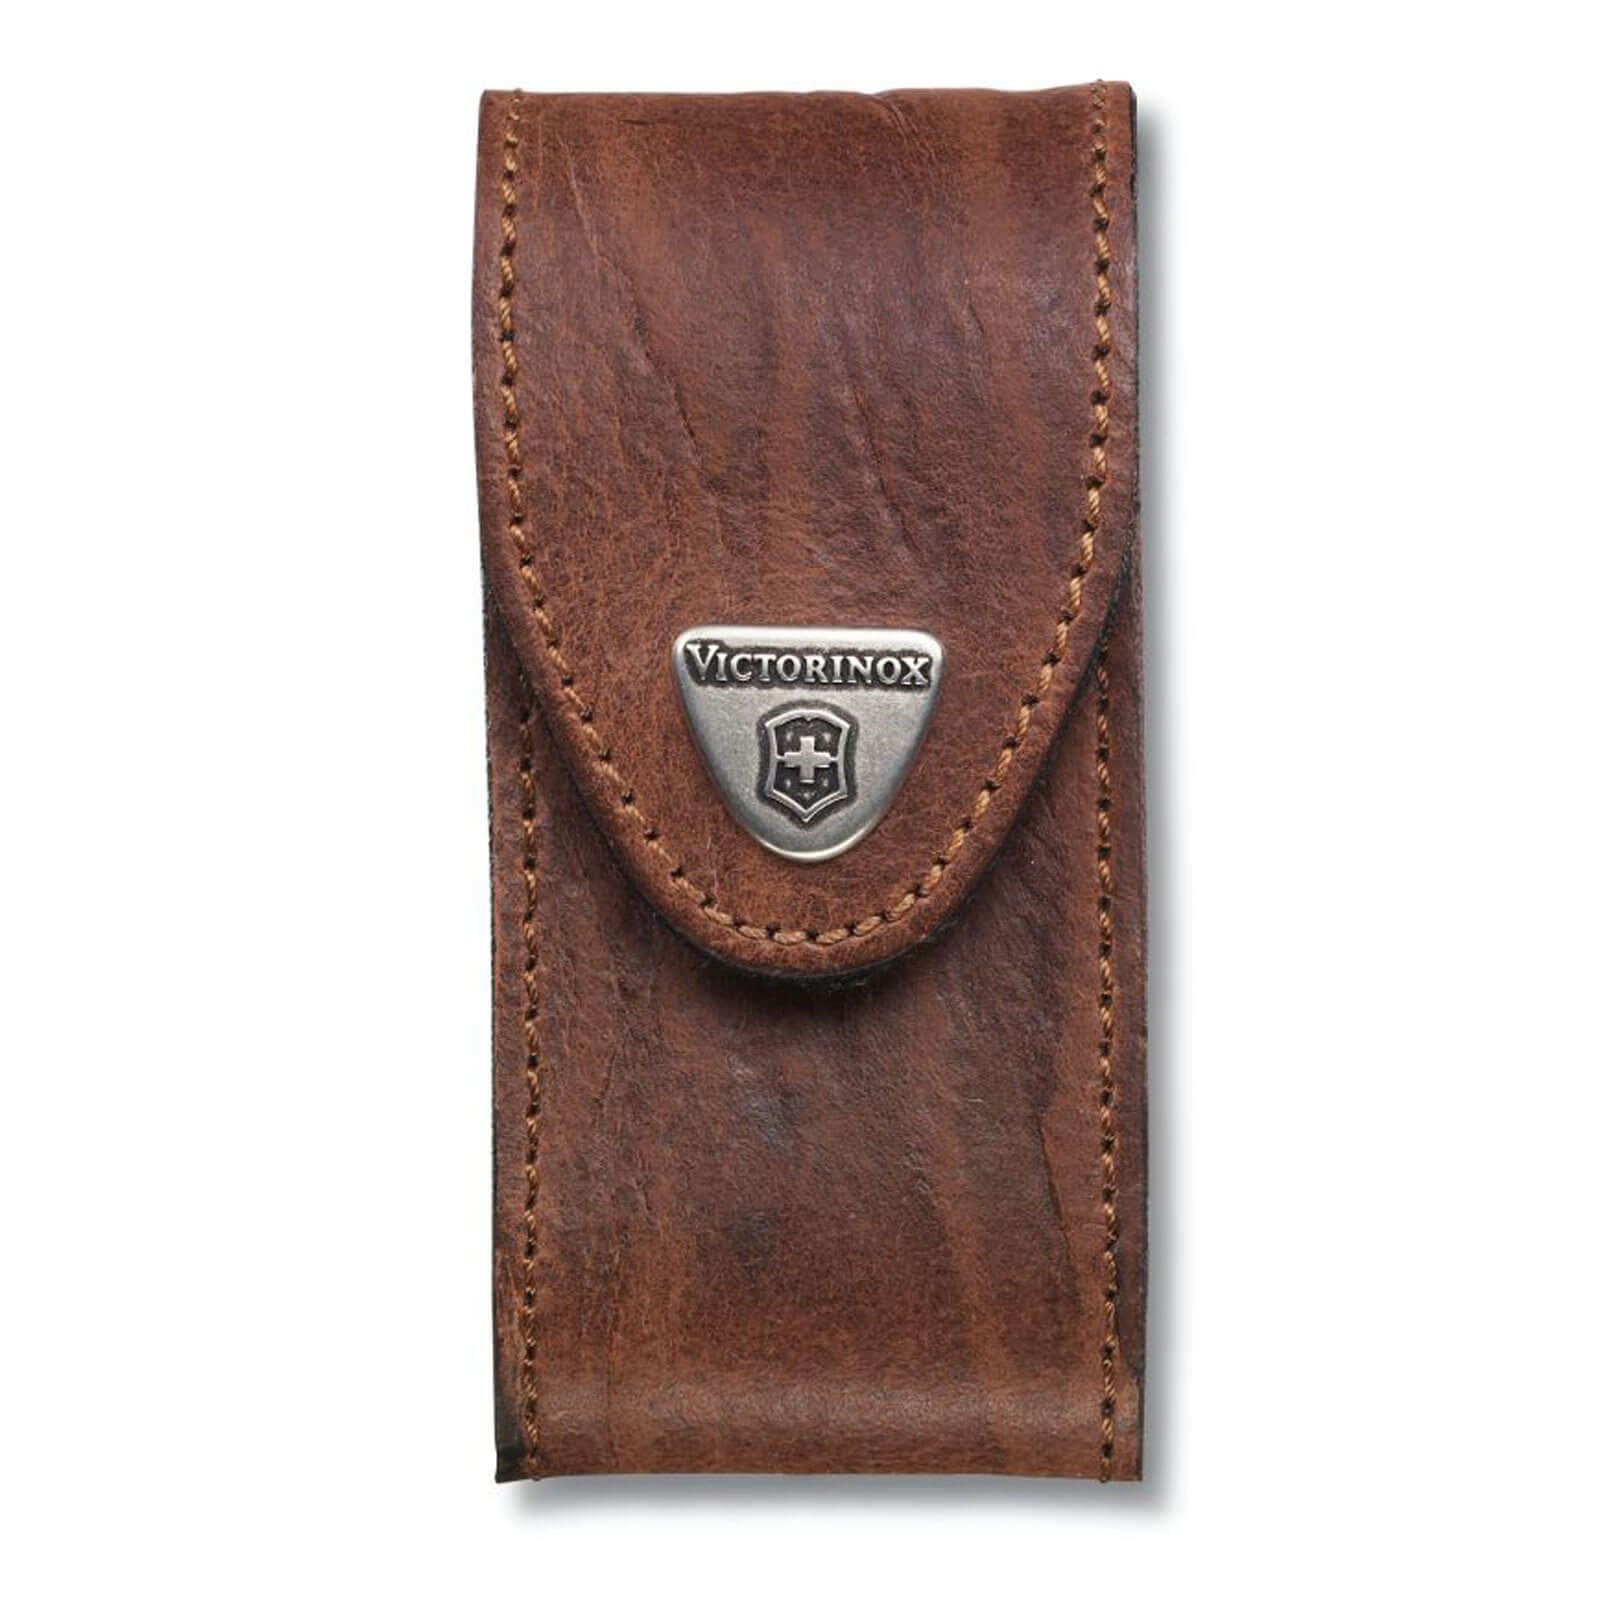 Image of Victorinox Brown Leather Belt Pouch 5-8 Layer Swiss Army Knives